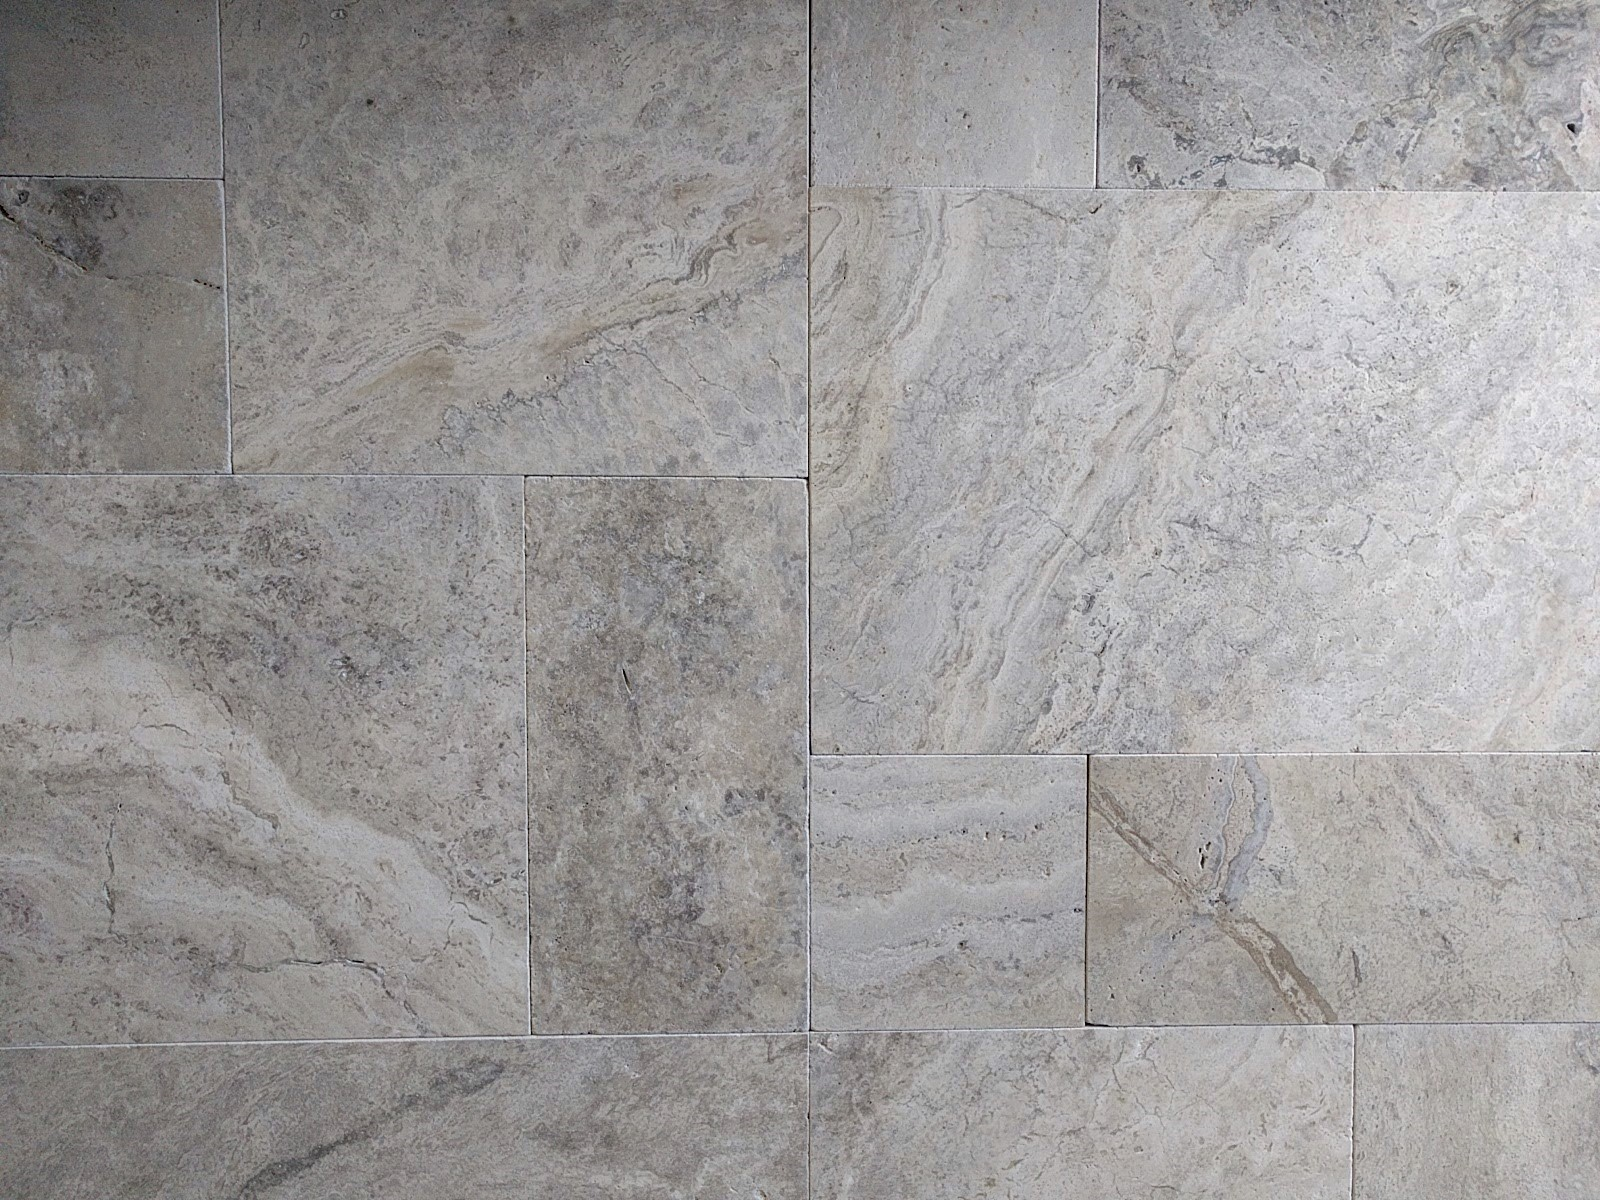 Limestone Or Travertine Tile : Silver oyster french pattern unfilled tumbled travertine